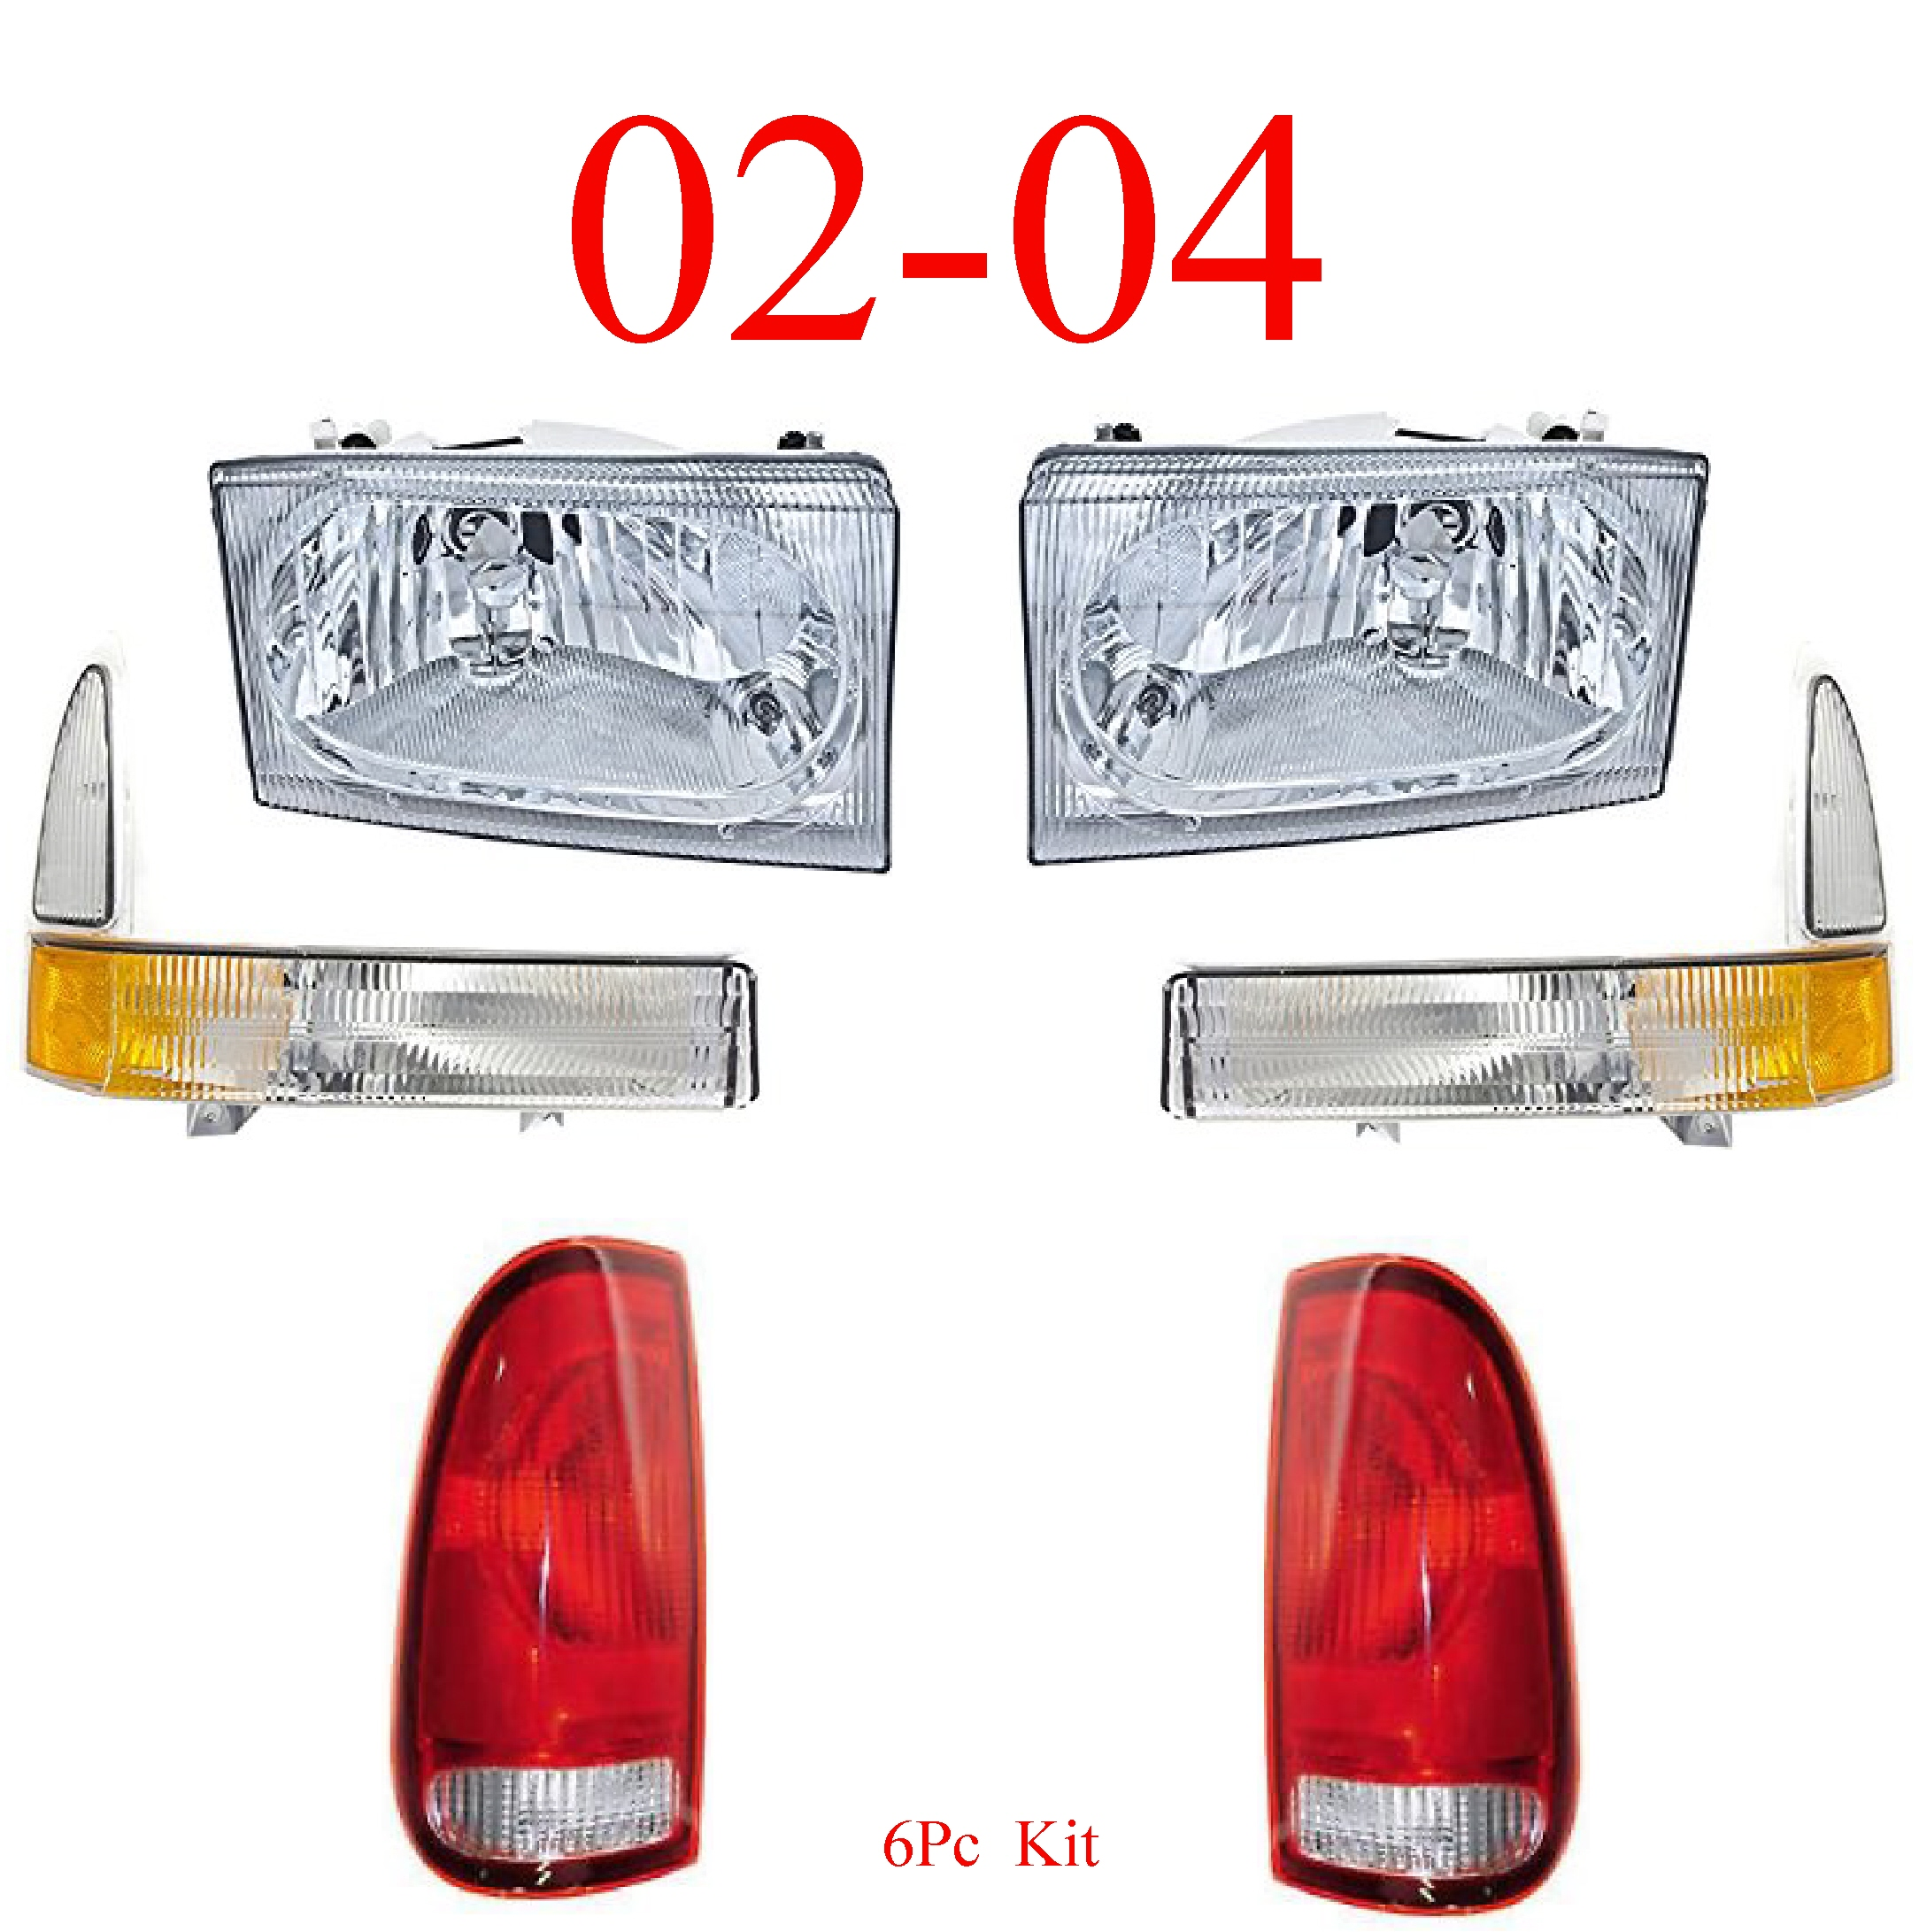 02-04 Ford Super Duty 6Pc Head, Park & Tail Light Kit